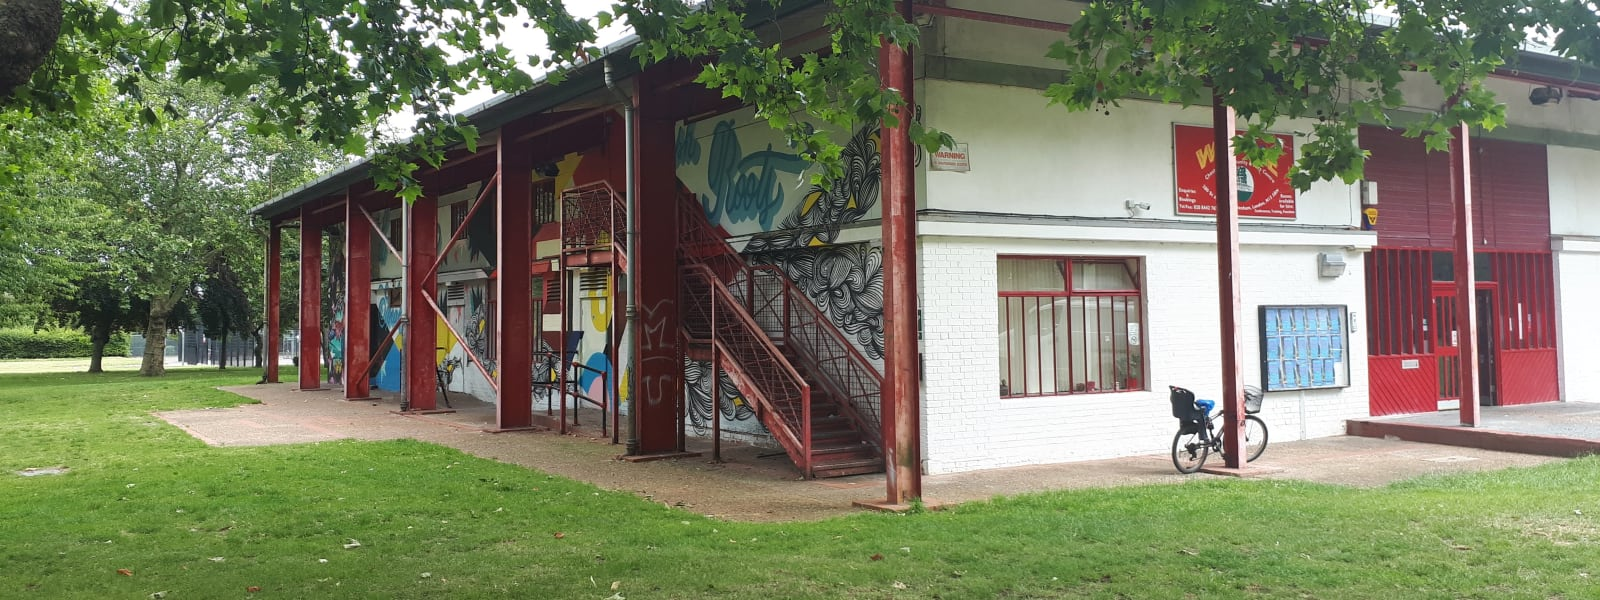 Chestnuts Community Centre